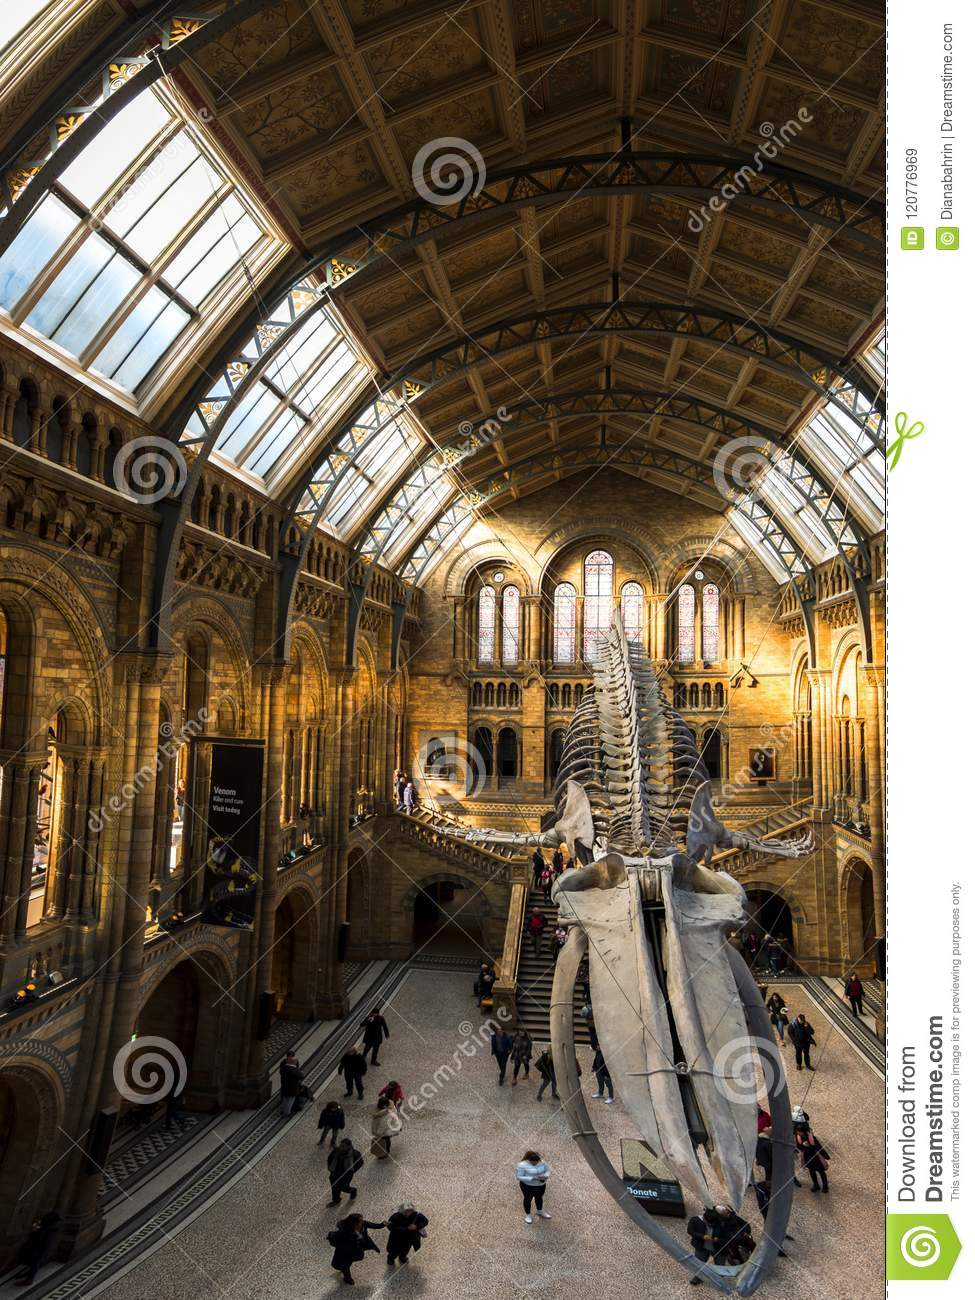 Wide view of the entrance to the Natural History Museum. Large blue whale skeleton on display and stunning architecture